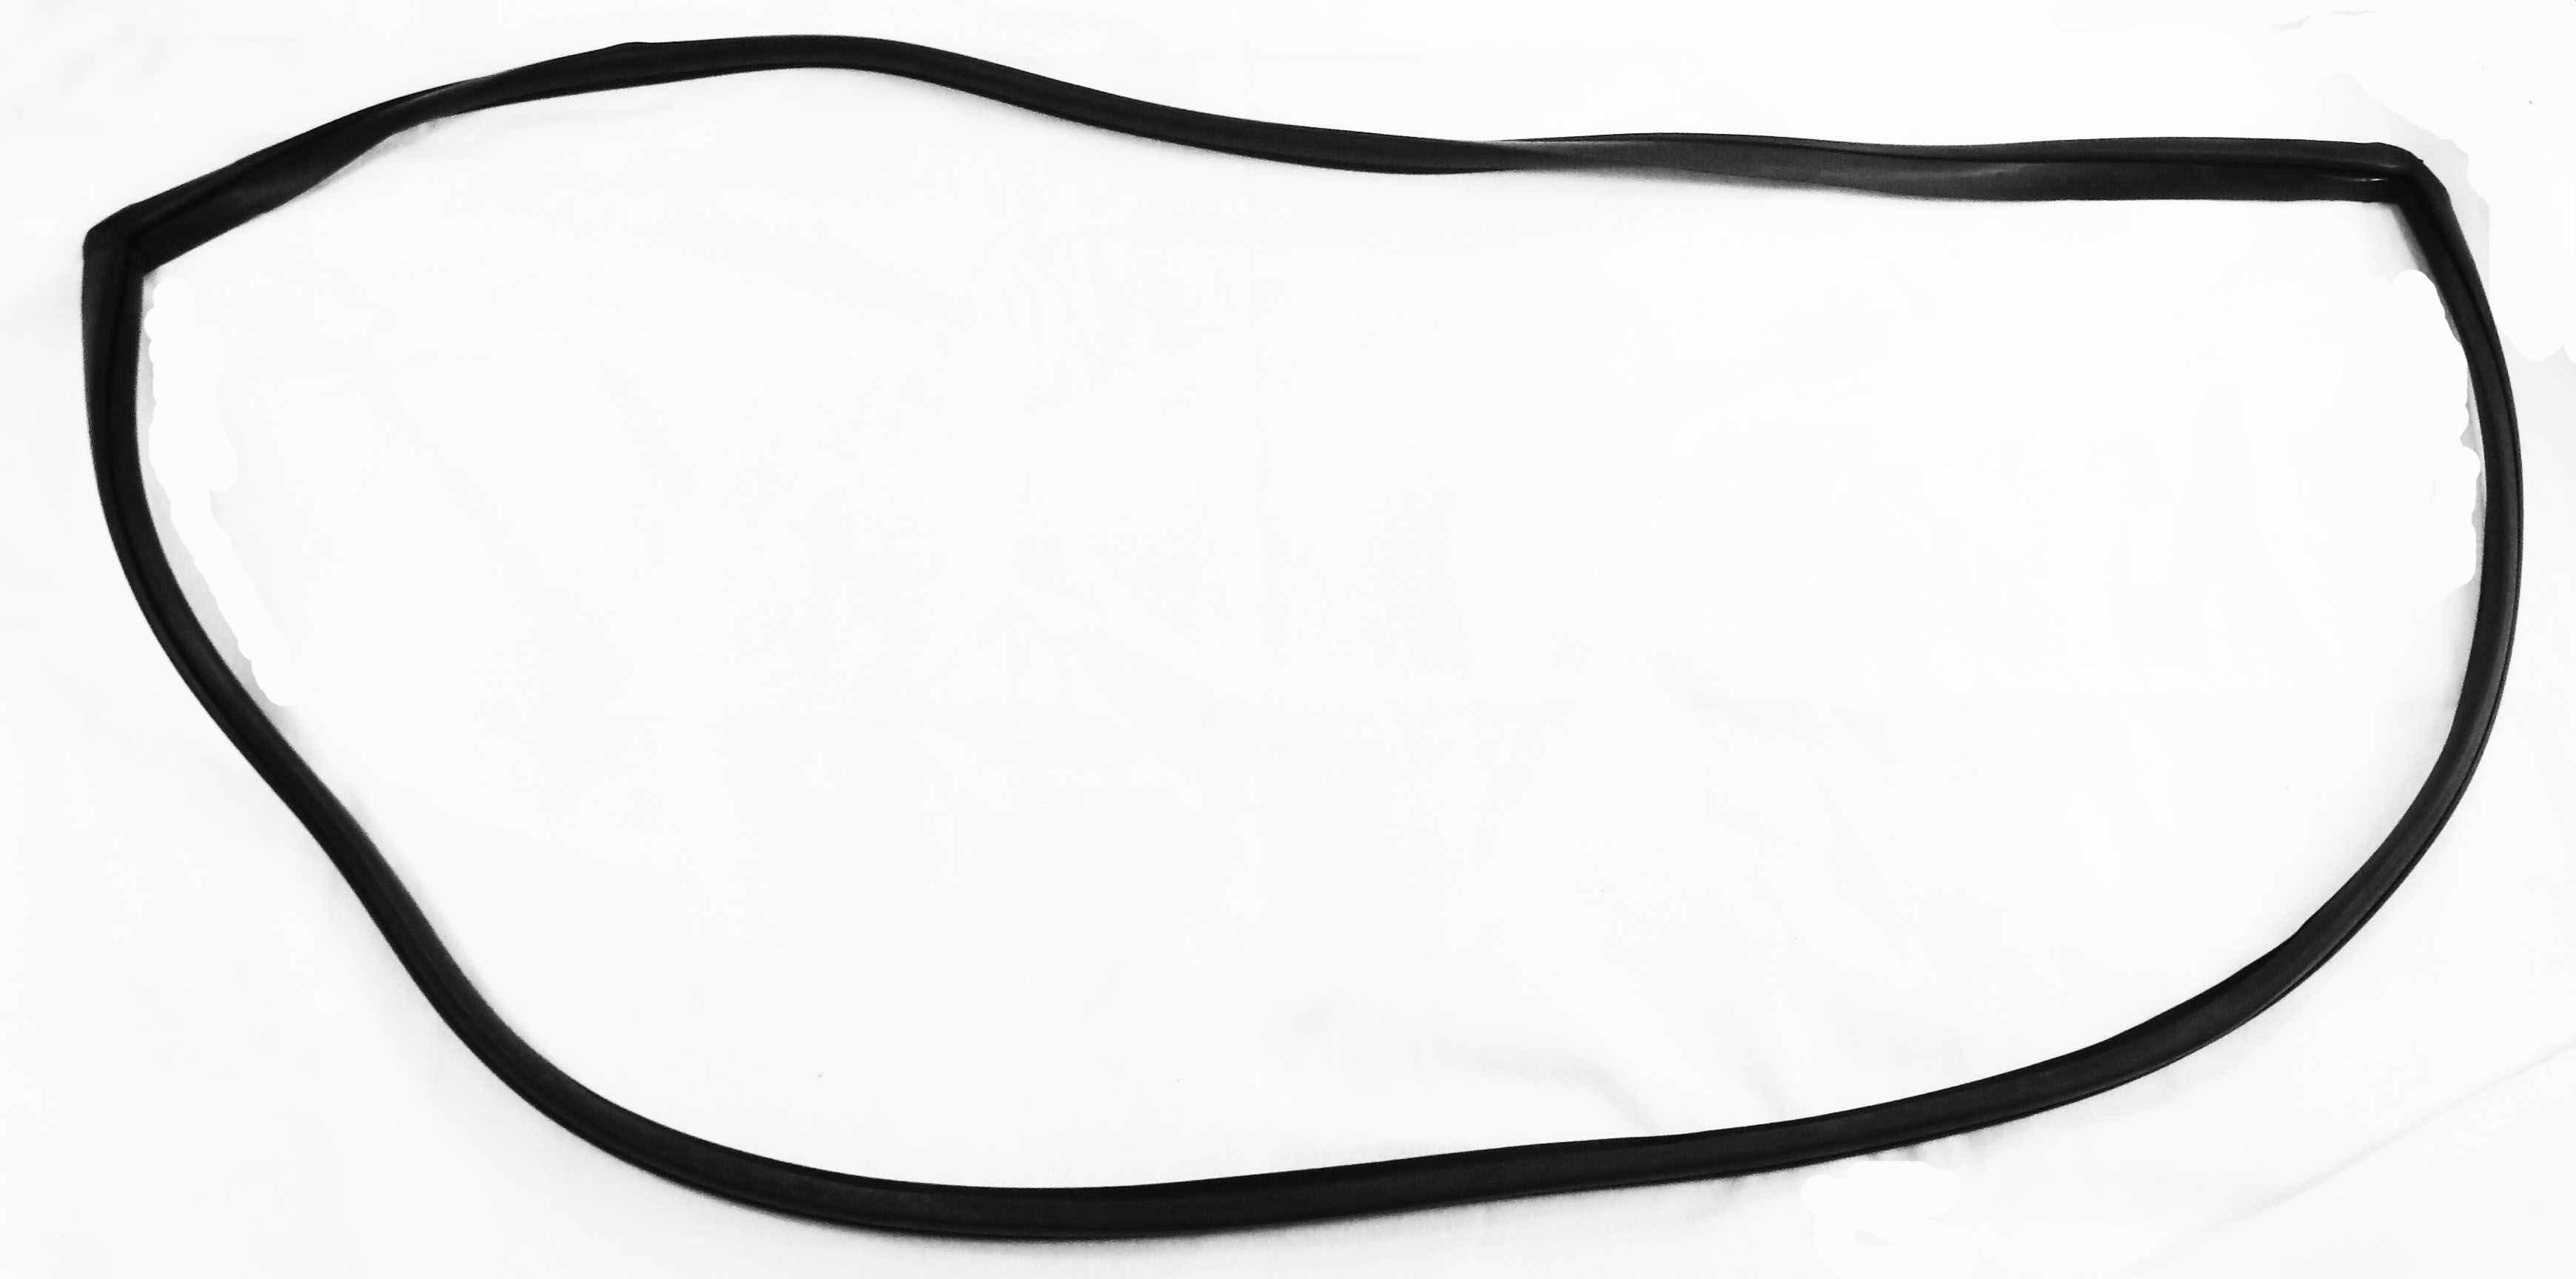 Rear Glass Channel For 1941-1948 2 Or 4 Door Sedans Except Aero